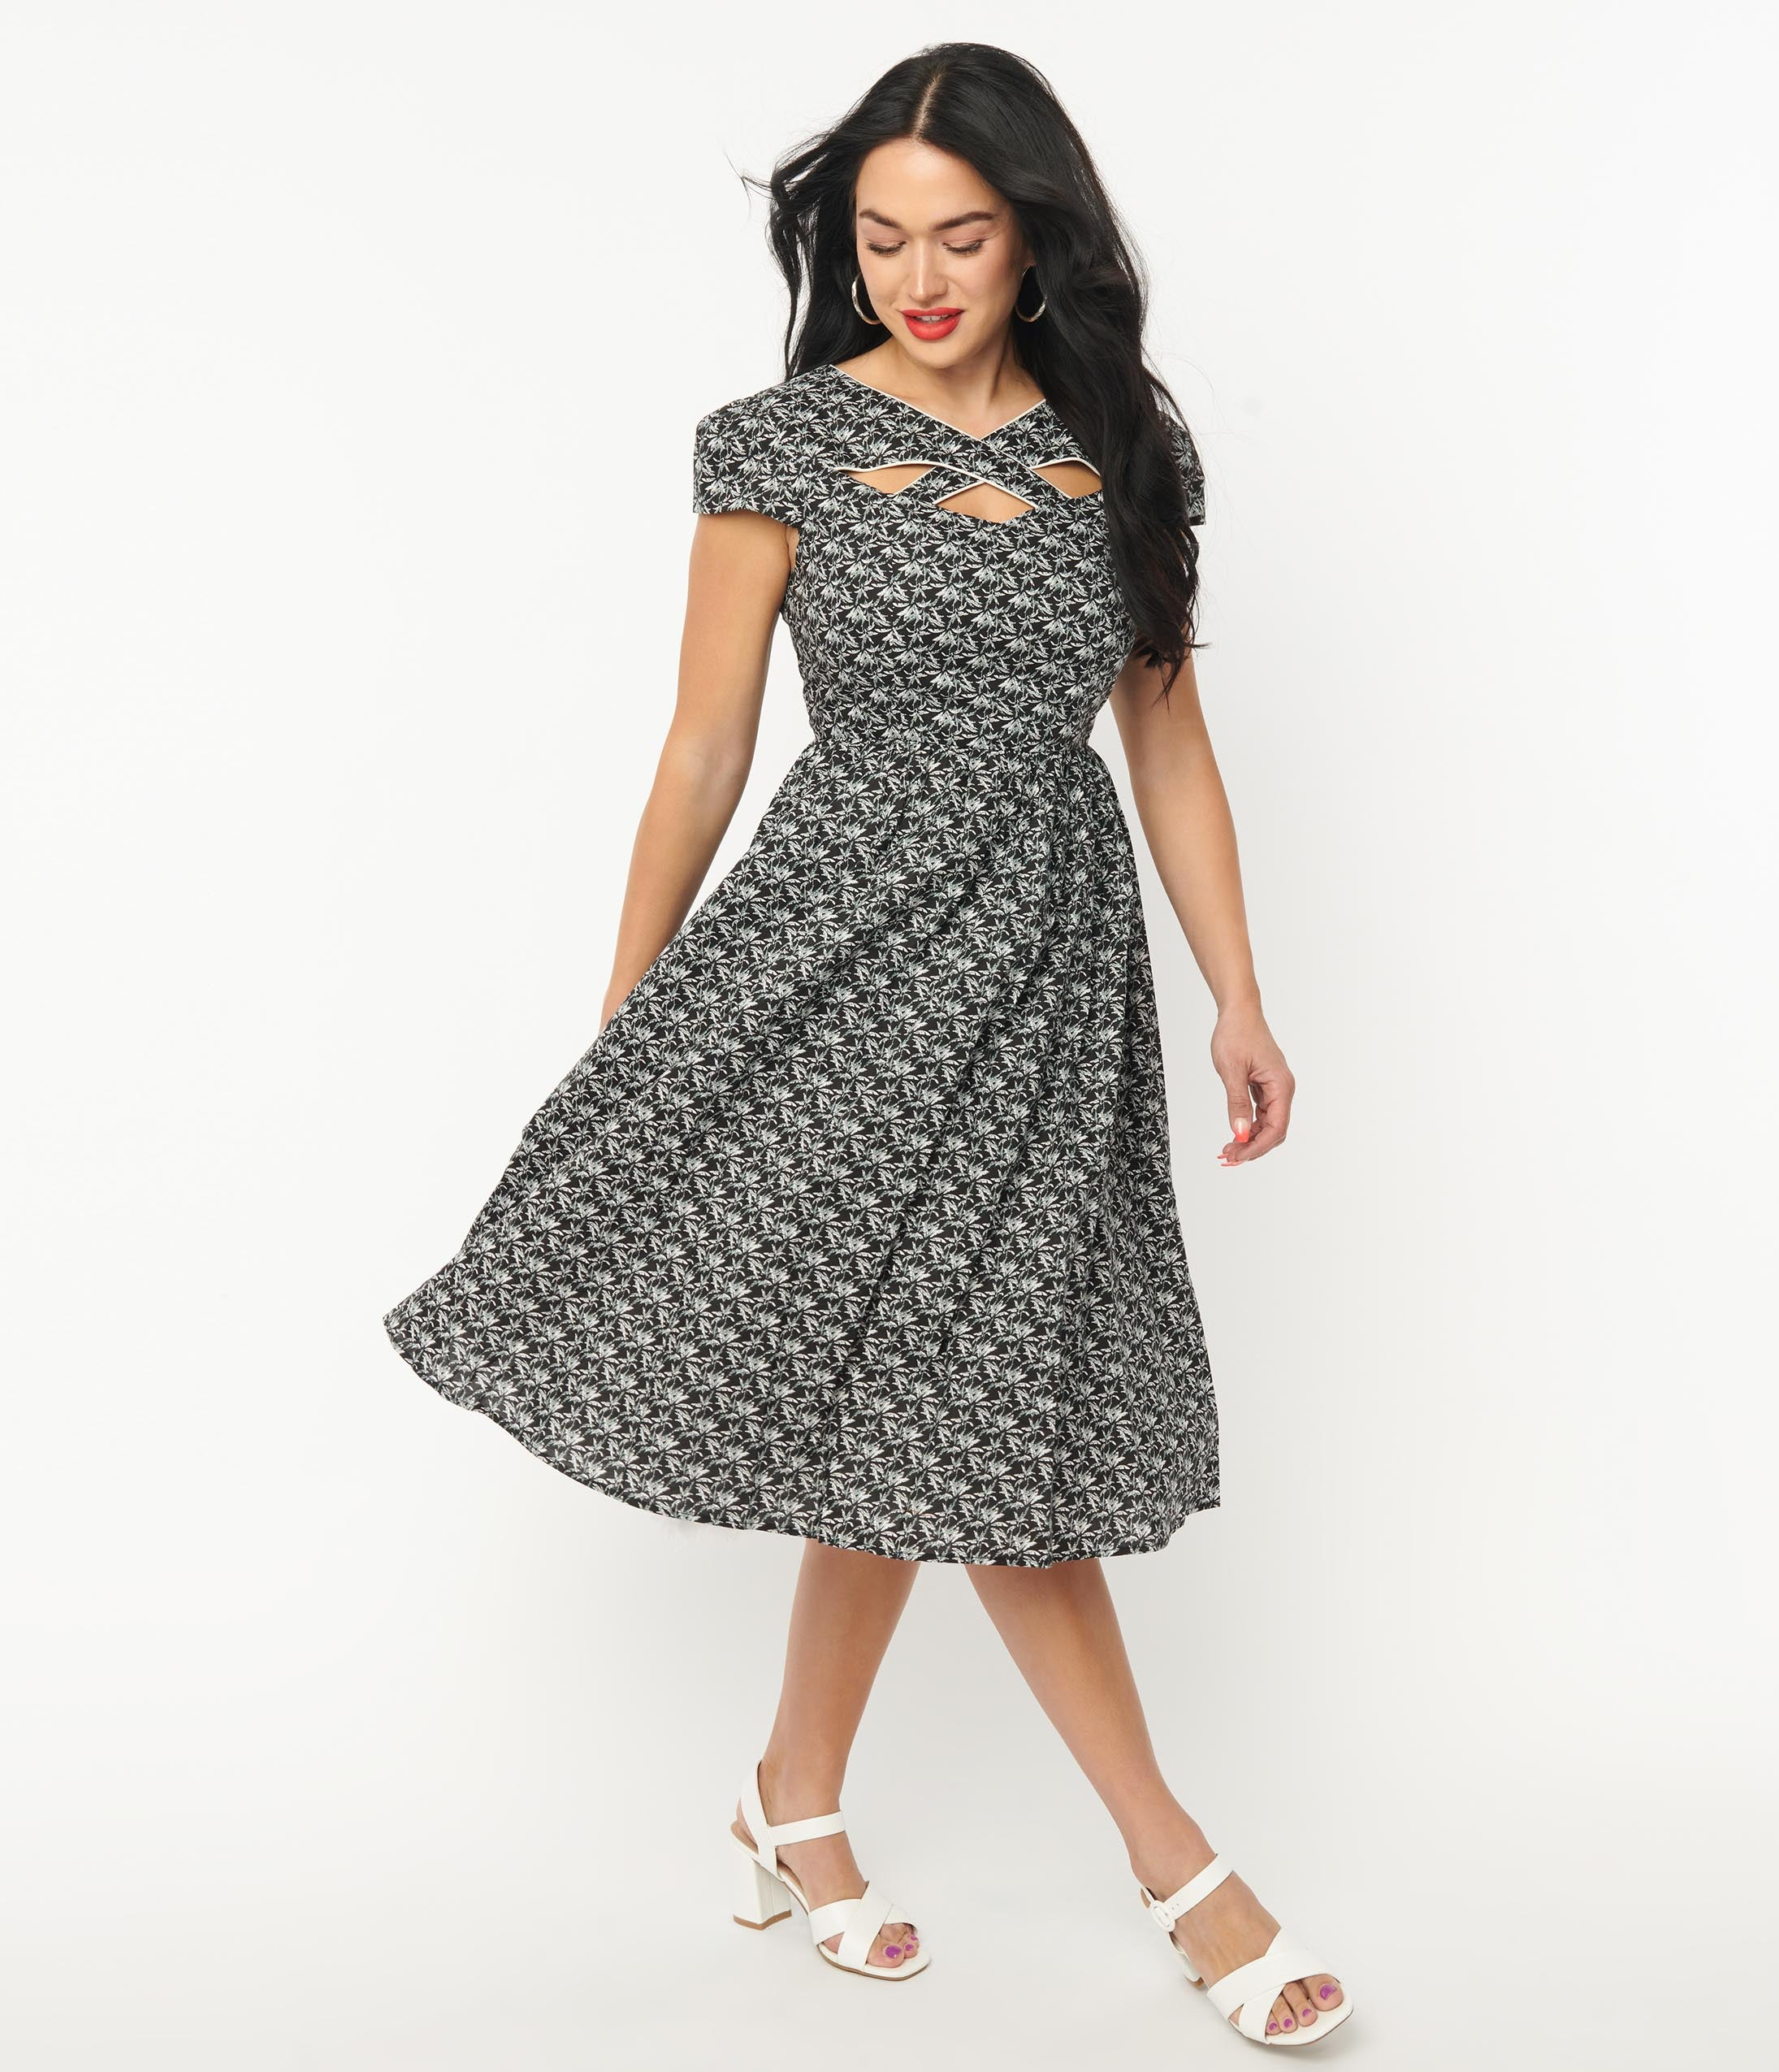 Pin Up Girl Costumes | Pin Up Costumes Magnolia Place Black  White Leaf Print Swing Dress $78.00 AT vintagedancer.com